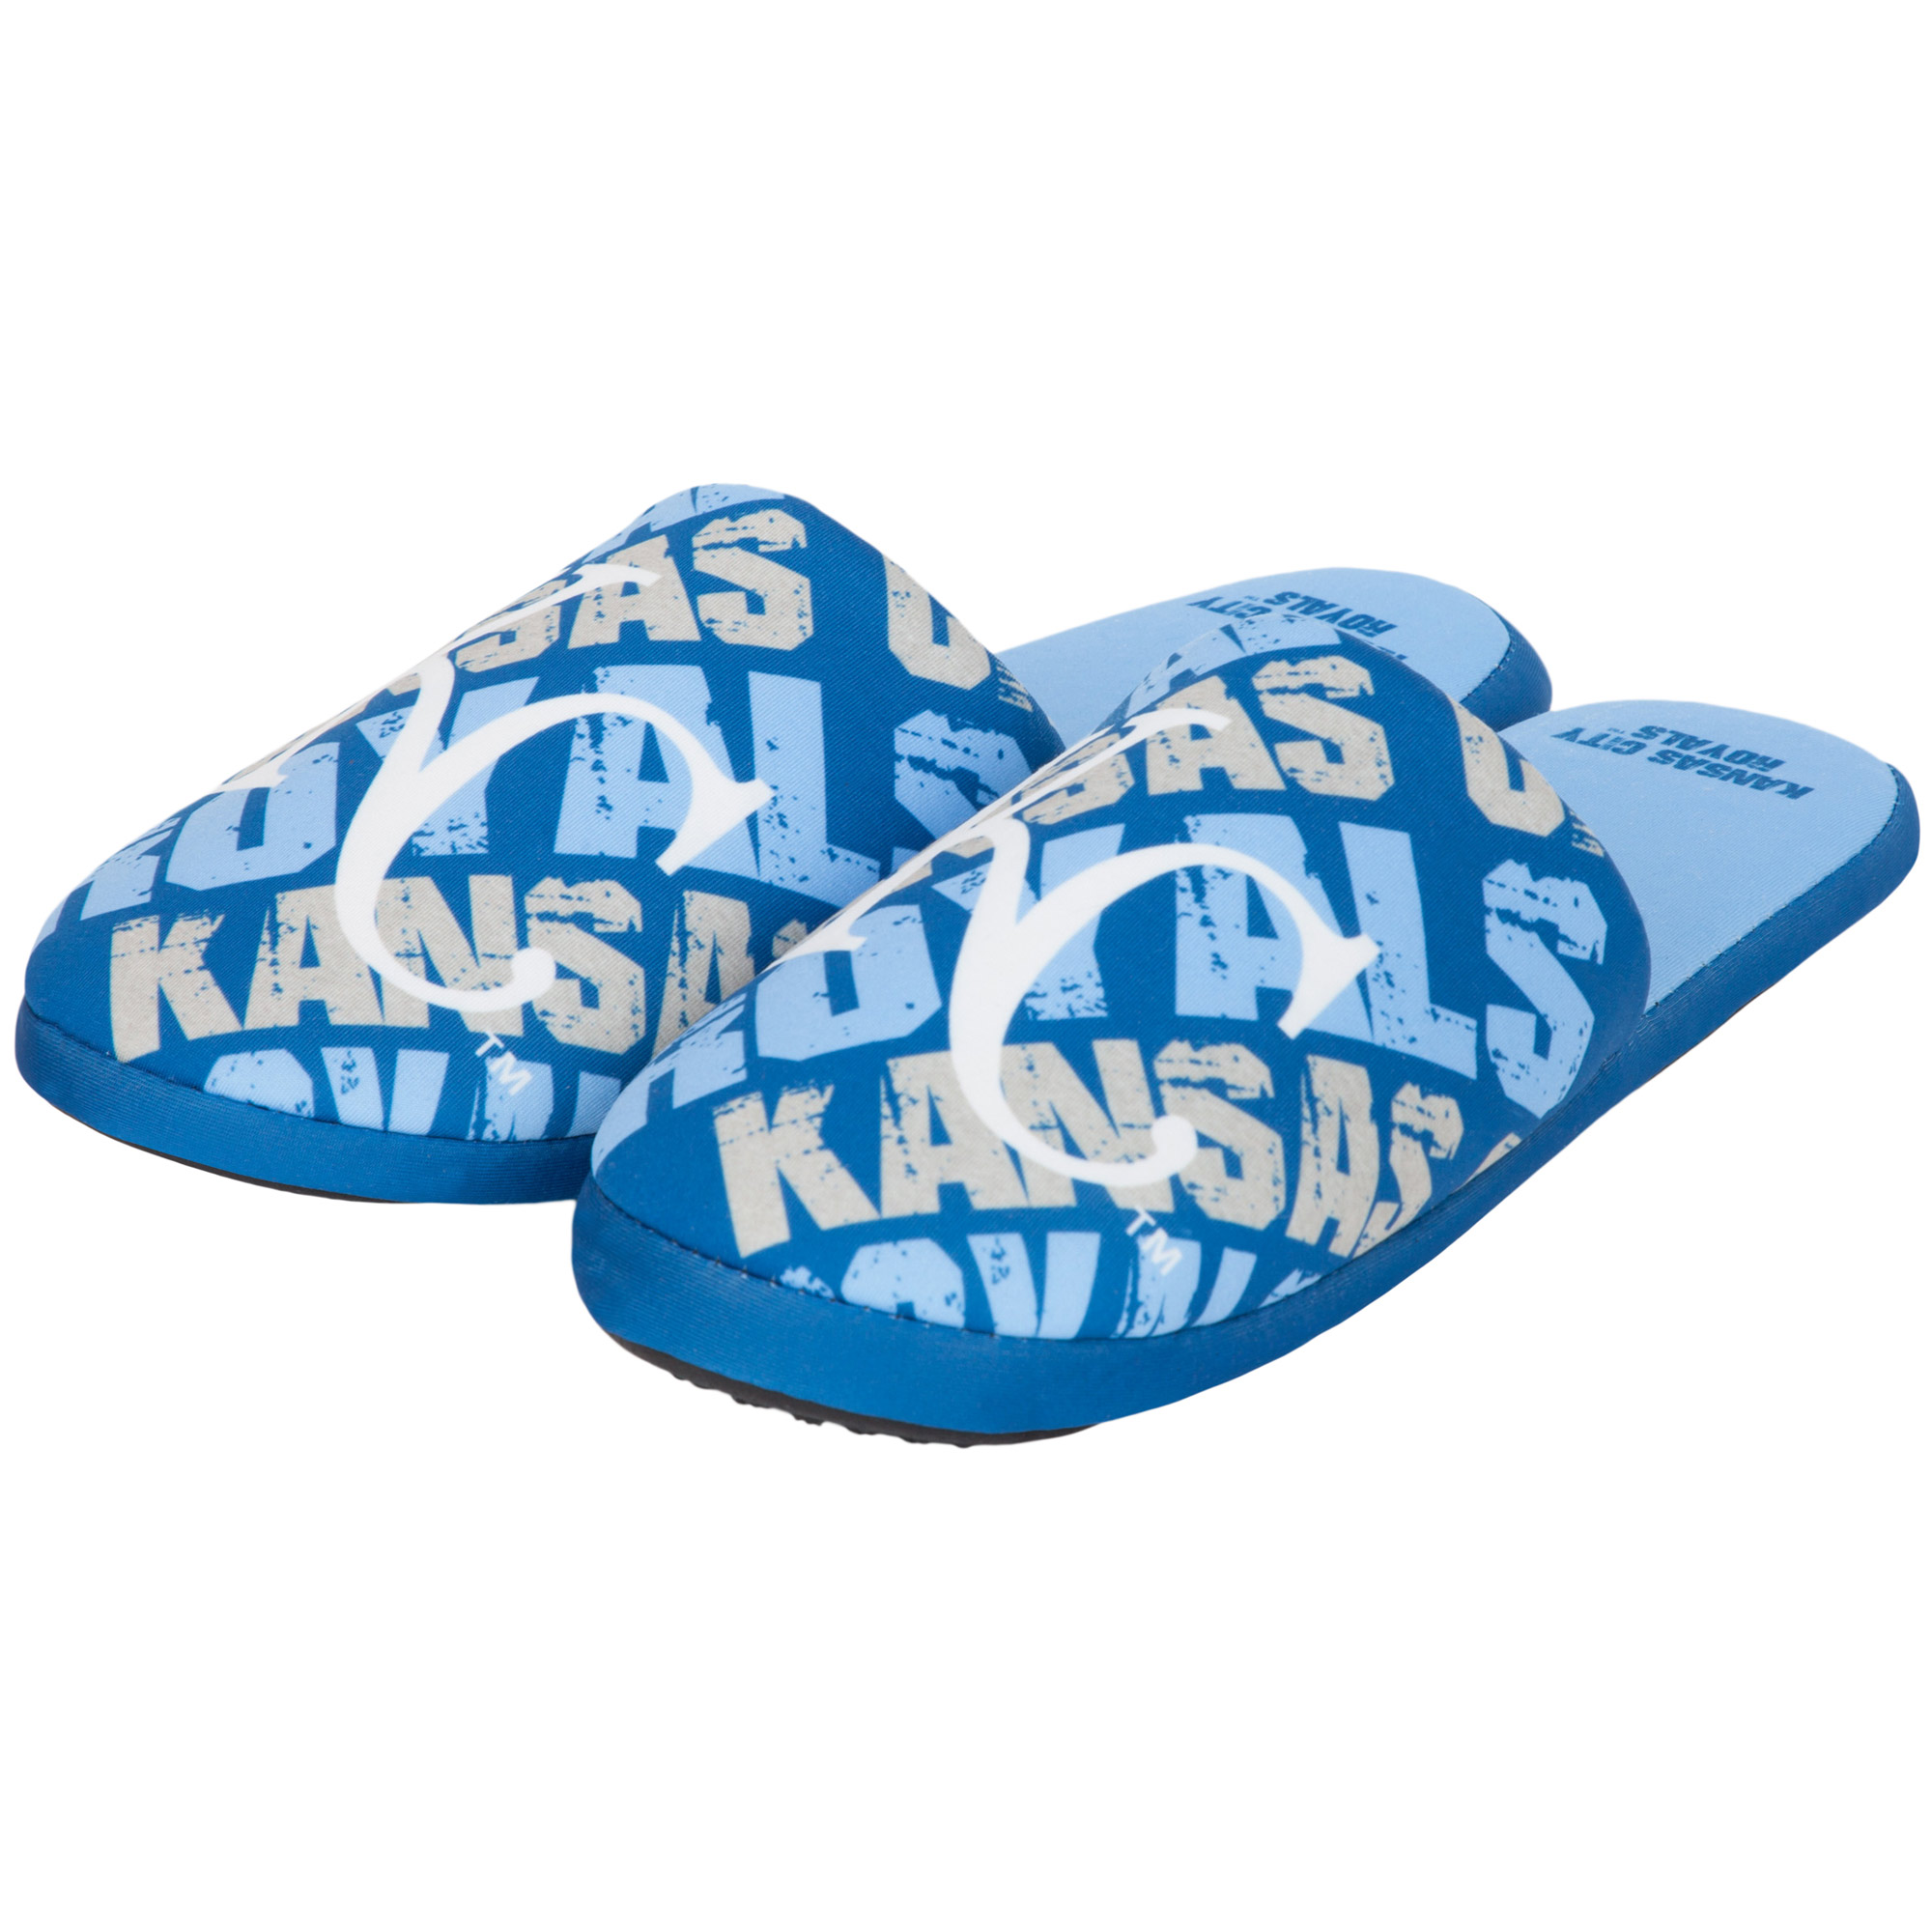 Kansas City Royals Youth Wordmark Printed Slippers - Royal